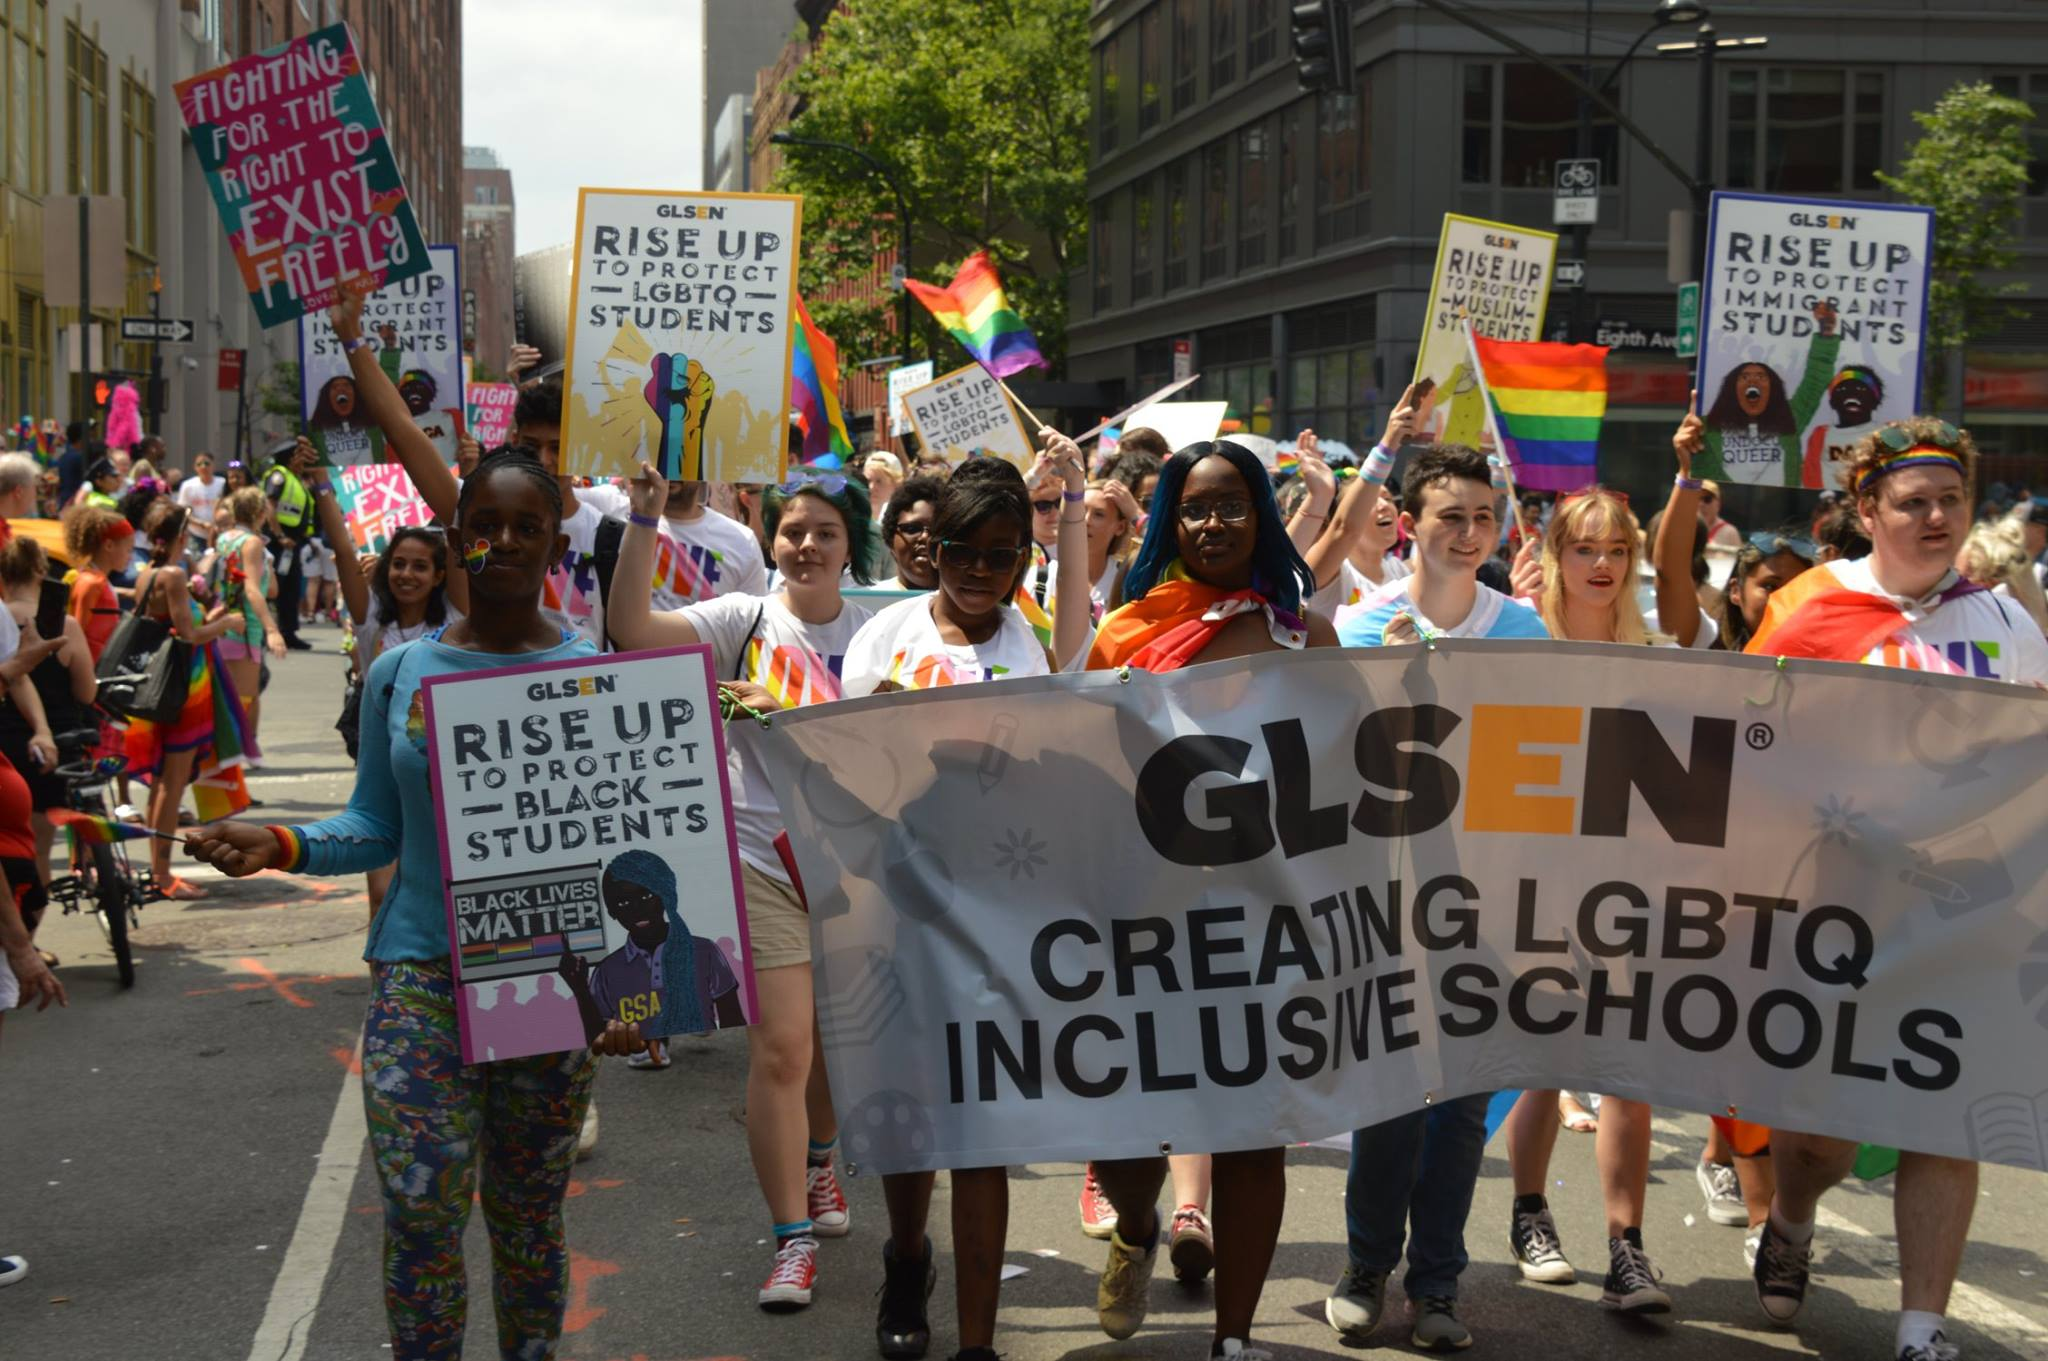 GLSEN with a banner at a Pride parade.